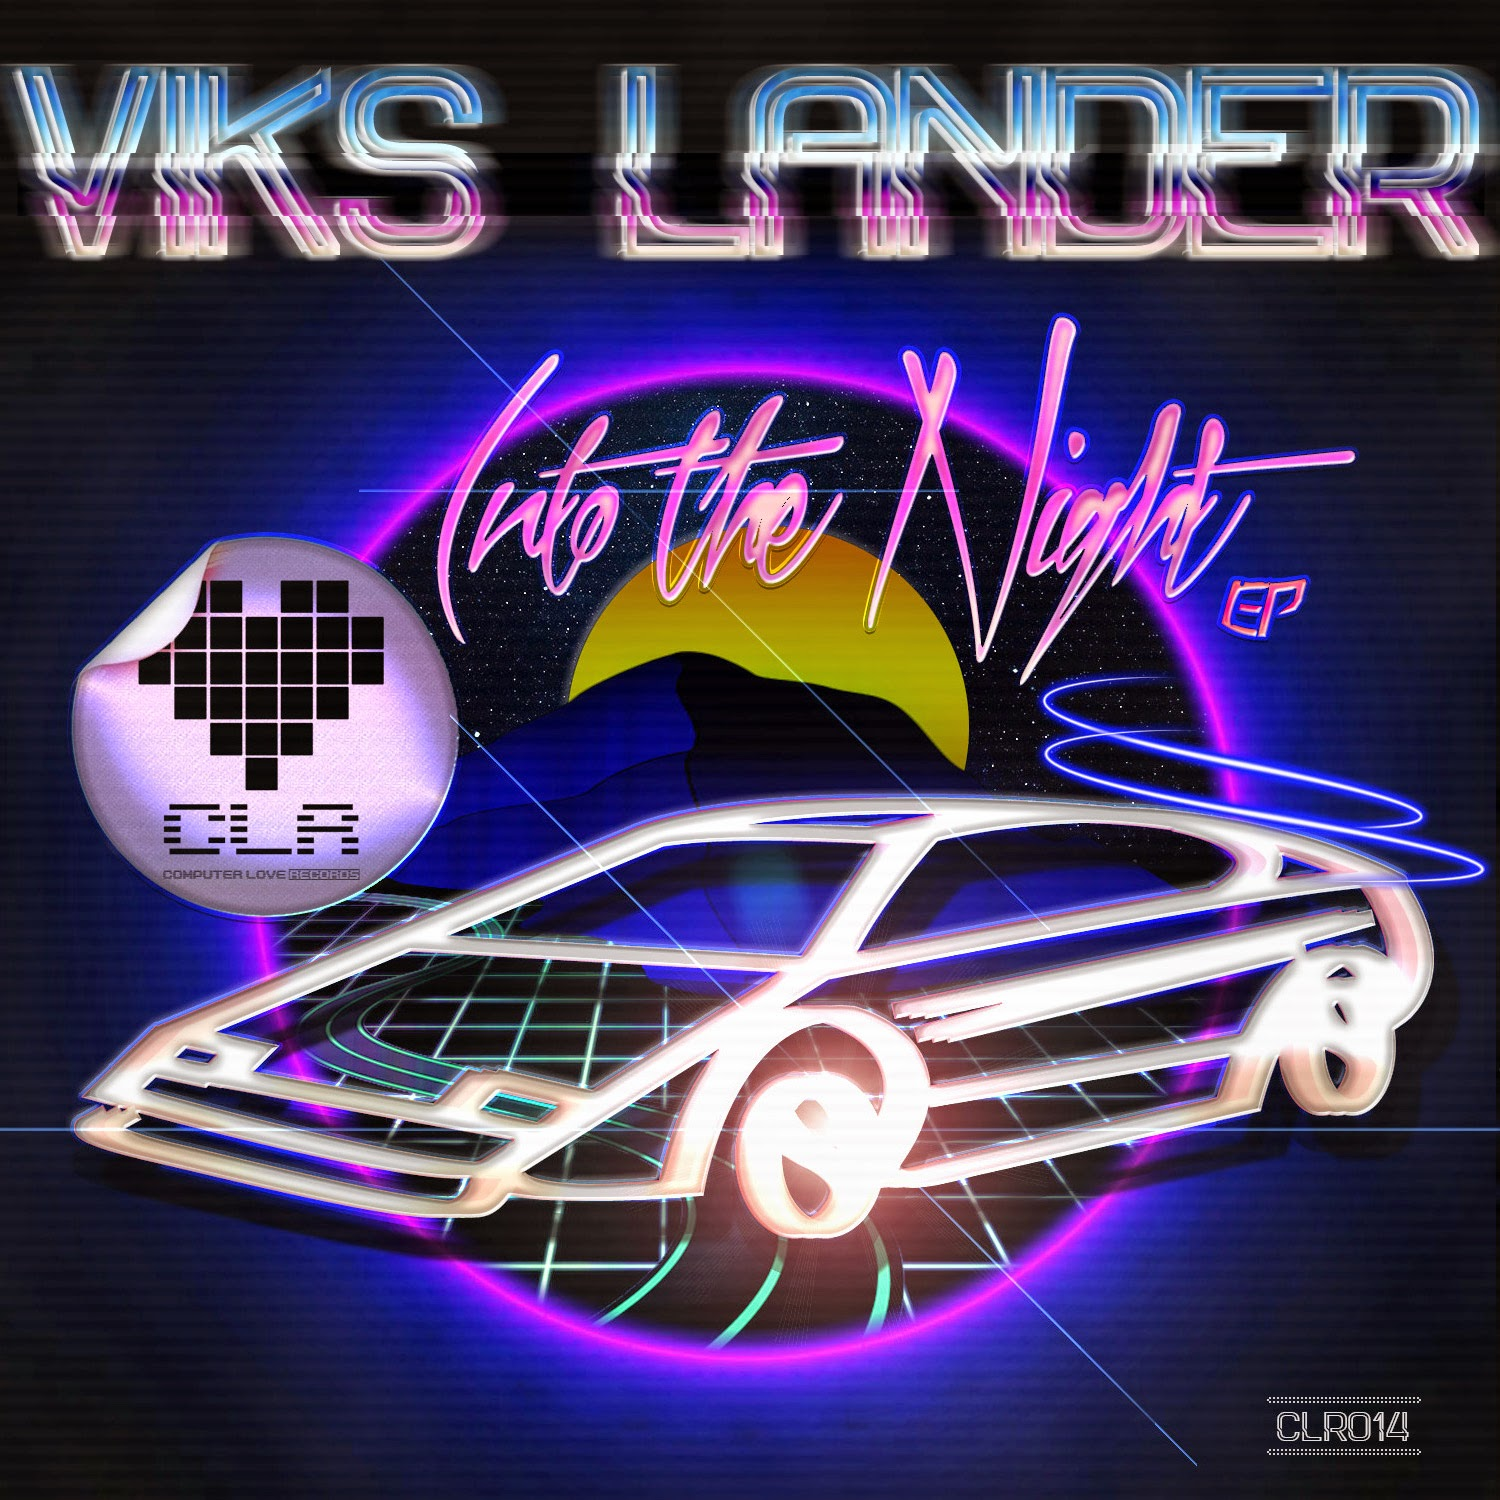 http://computerloverecords.blogspot.com/p/viks-lander-into-night-ep.html